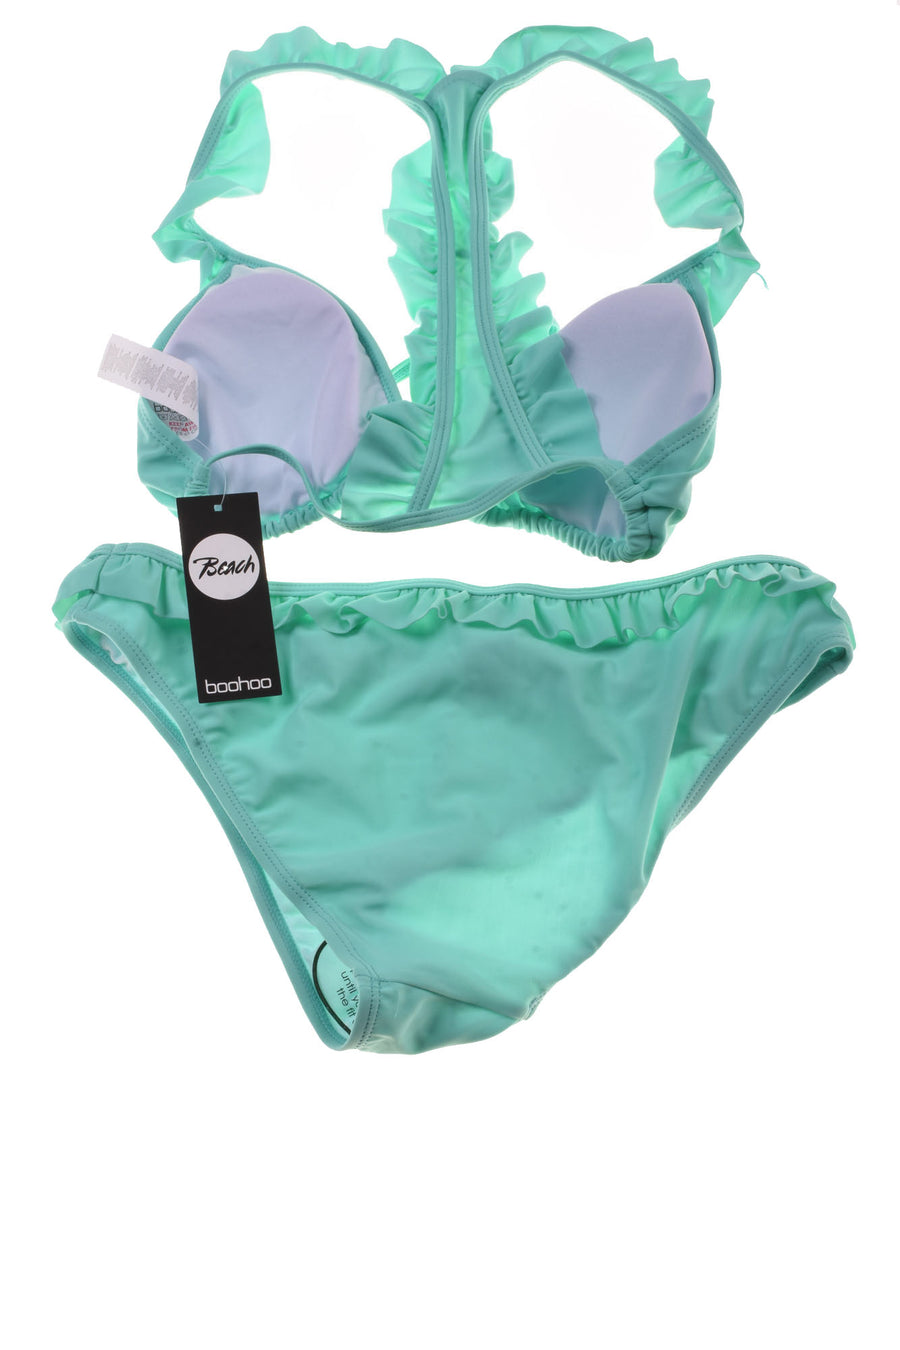 NEW Boohoo Women's Swimsuit 10 Mint